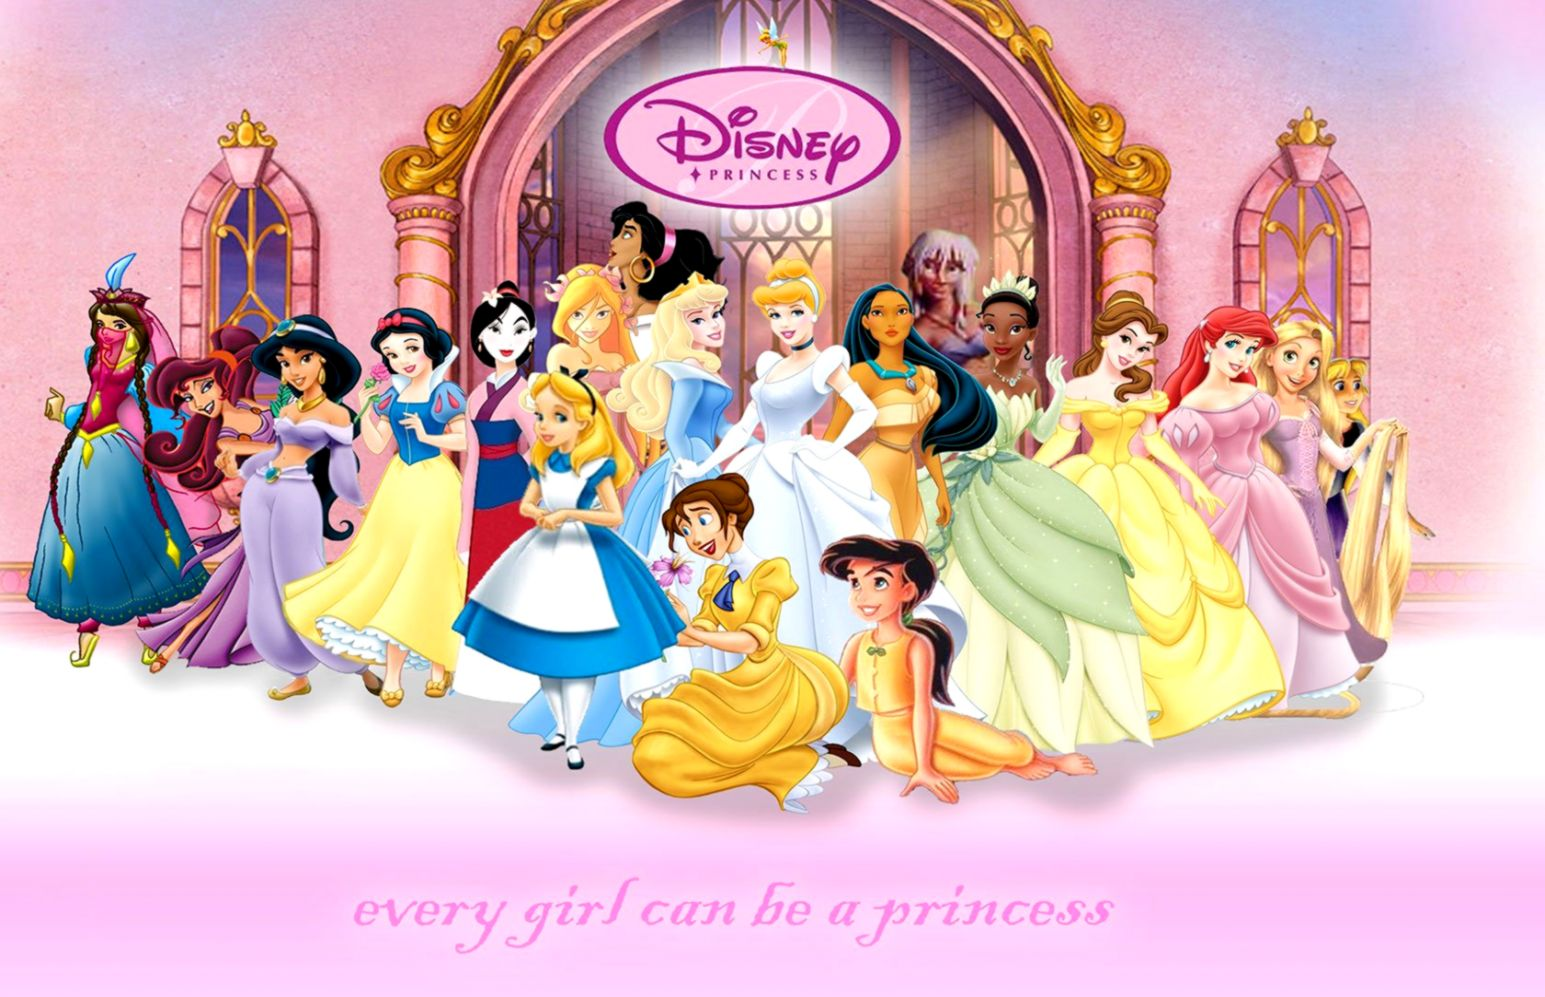 Disney Princess Wallpapers Wallpapers Just Do It